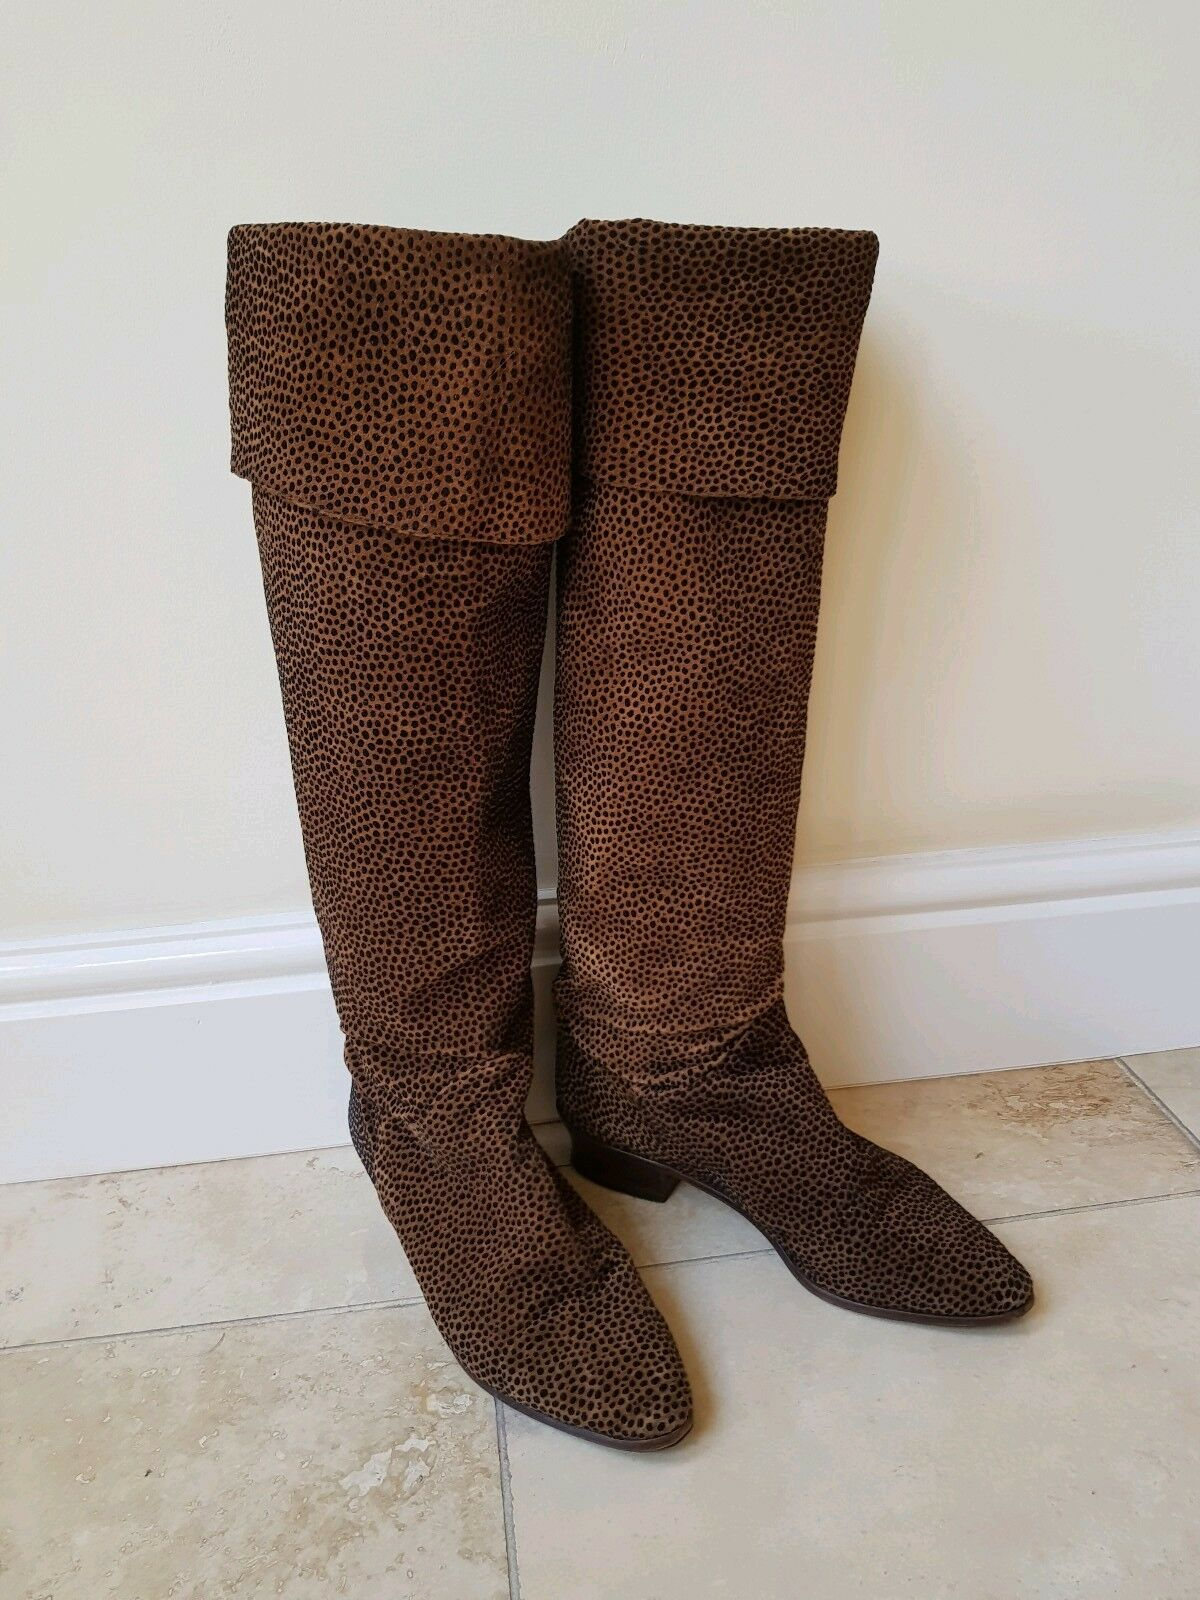 Mesdames marron Russell & Bromley Cuissardes Cuissardes Cuissardes Cuir Daim Bottes Taille 7 40 Excellent e88702